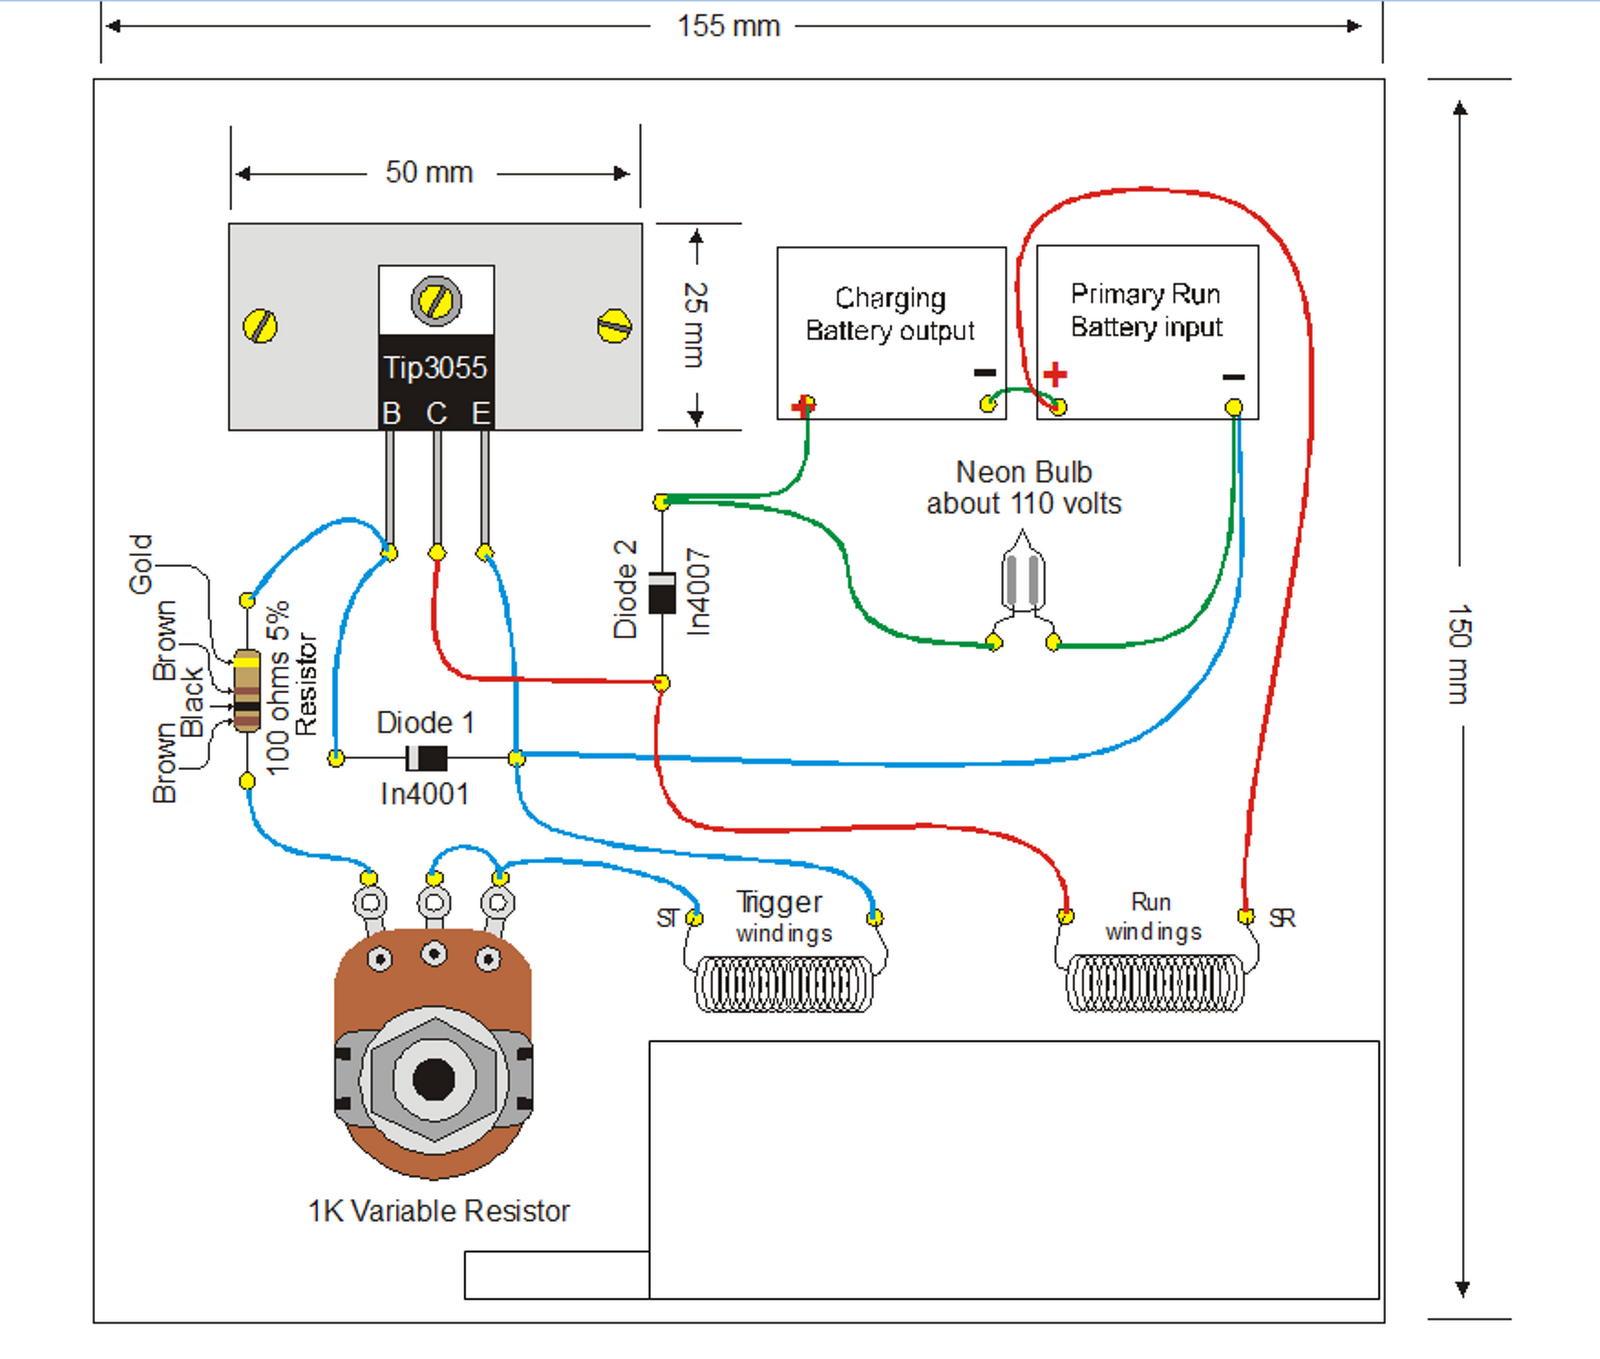 switch wiring diagram on tesla free energy generator circuit diagrammaking a free energy generator circuit an unsolved issue circuitmaking a free energy generator circuit an